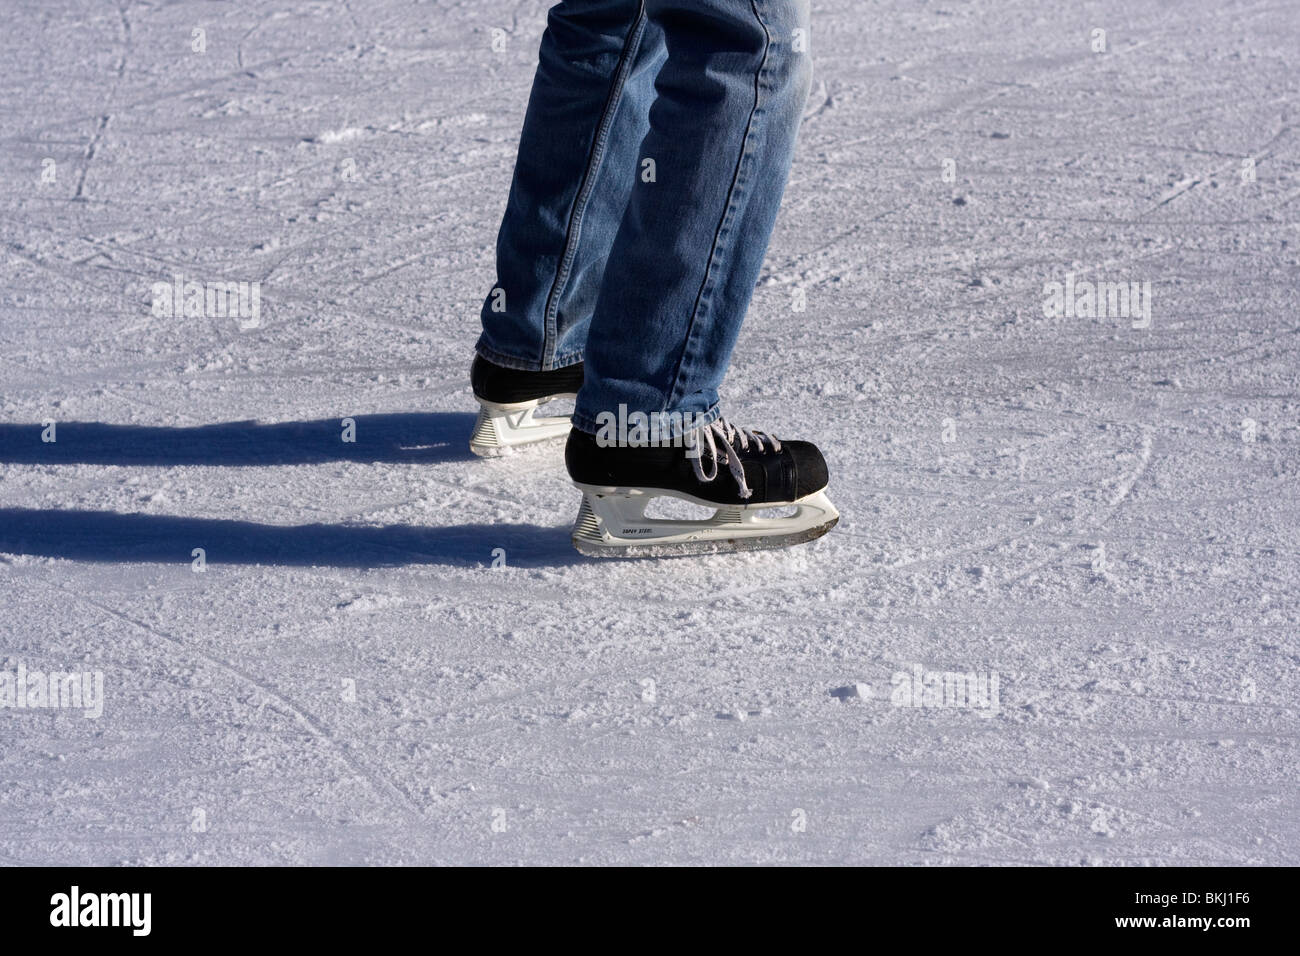 Legs of ice skater on rink. - Stock Image